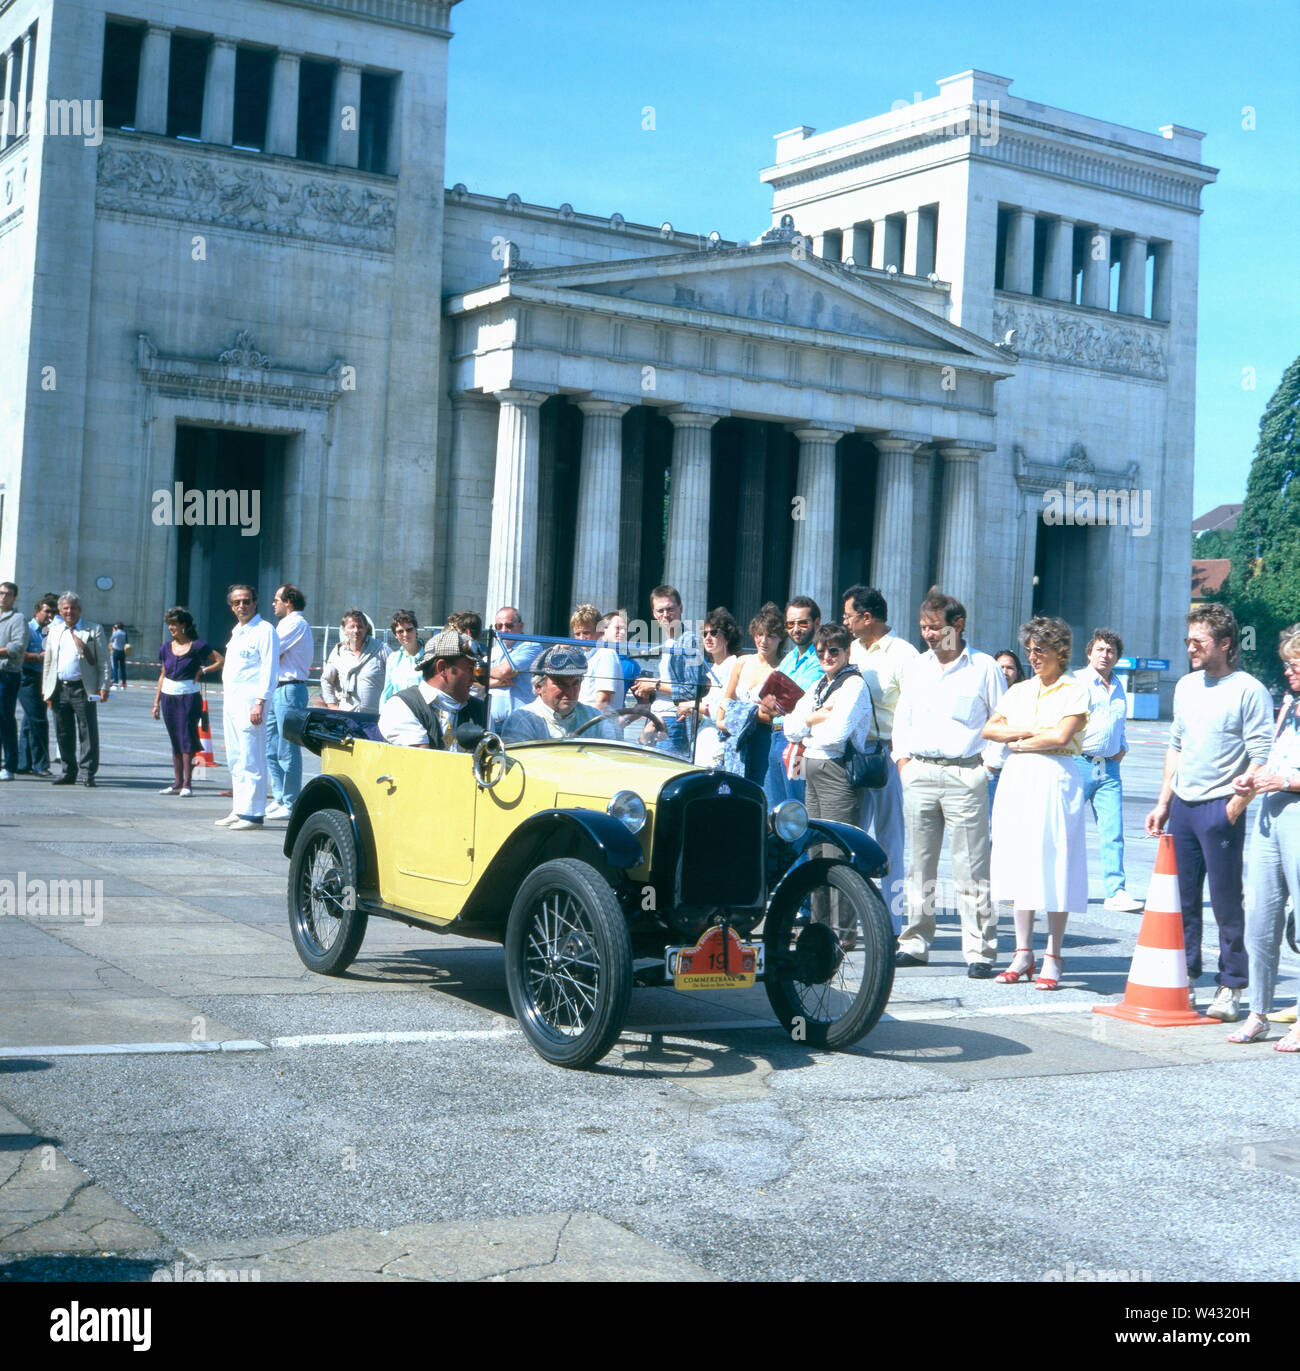 Ein Packard 833 Cabrio fährt während einer Oldtimershow in München Ende der 1980er Jahre an einigen bewundernden Zuschauern vorbei. A Packard 833 convertible drives past admiring spectators during a vintage car show in Munich in the late 1980s. - Stock Image